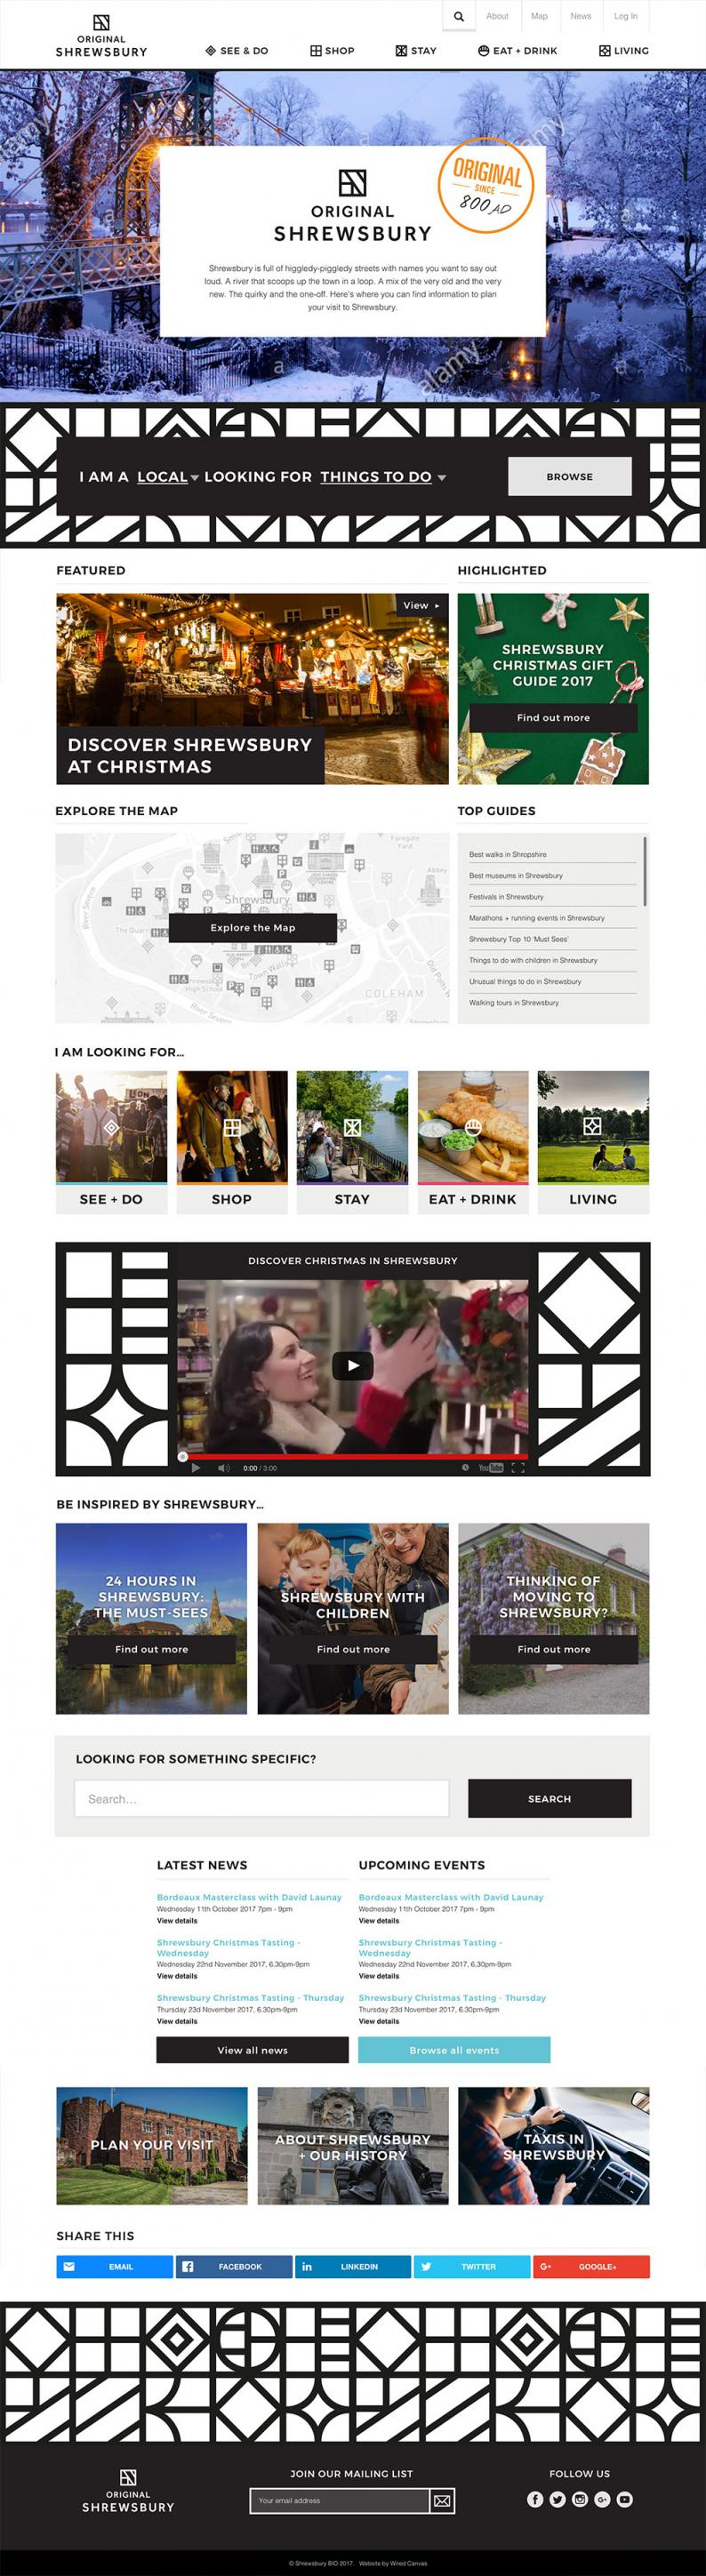 Original Shrewsbury Website Homepage - Desktop view